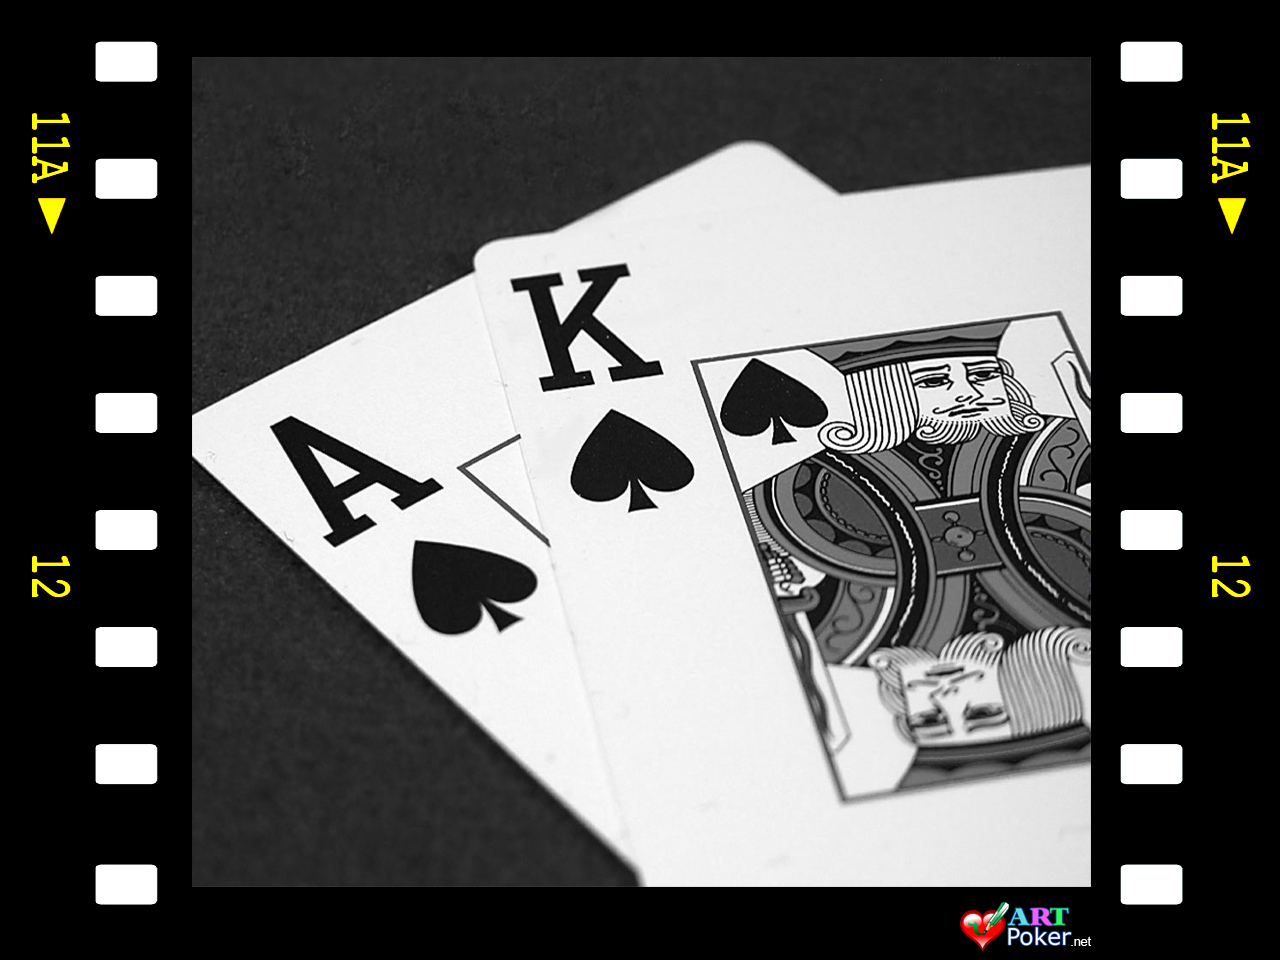 How many points is an ace worth in rummy